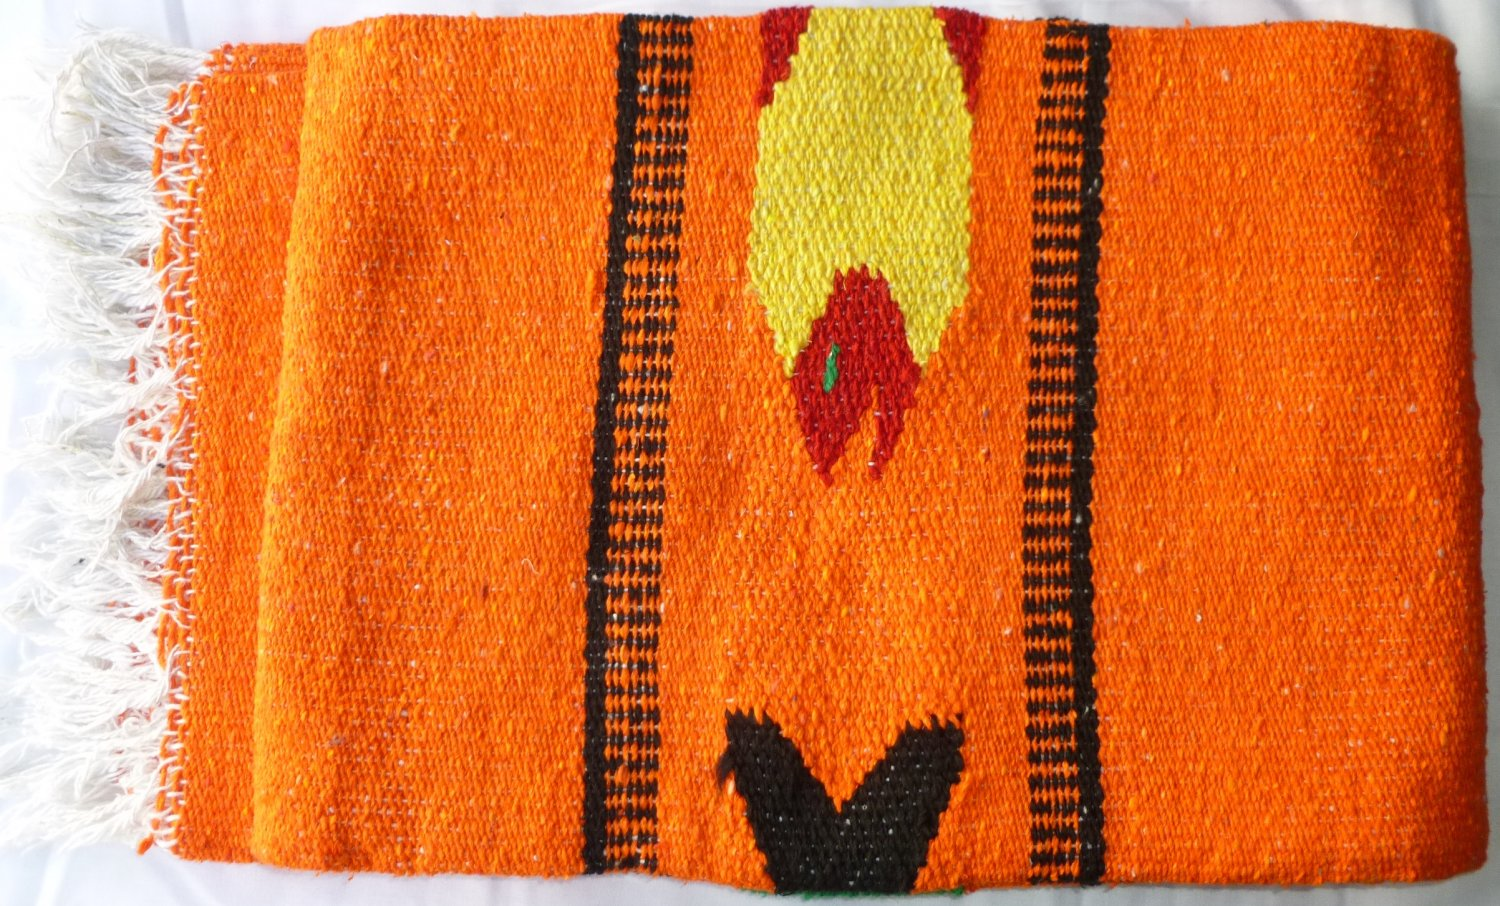 Southwestern Mexican Large serape blanket pilates blanket multi color Fish Orange